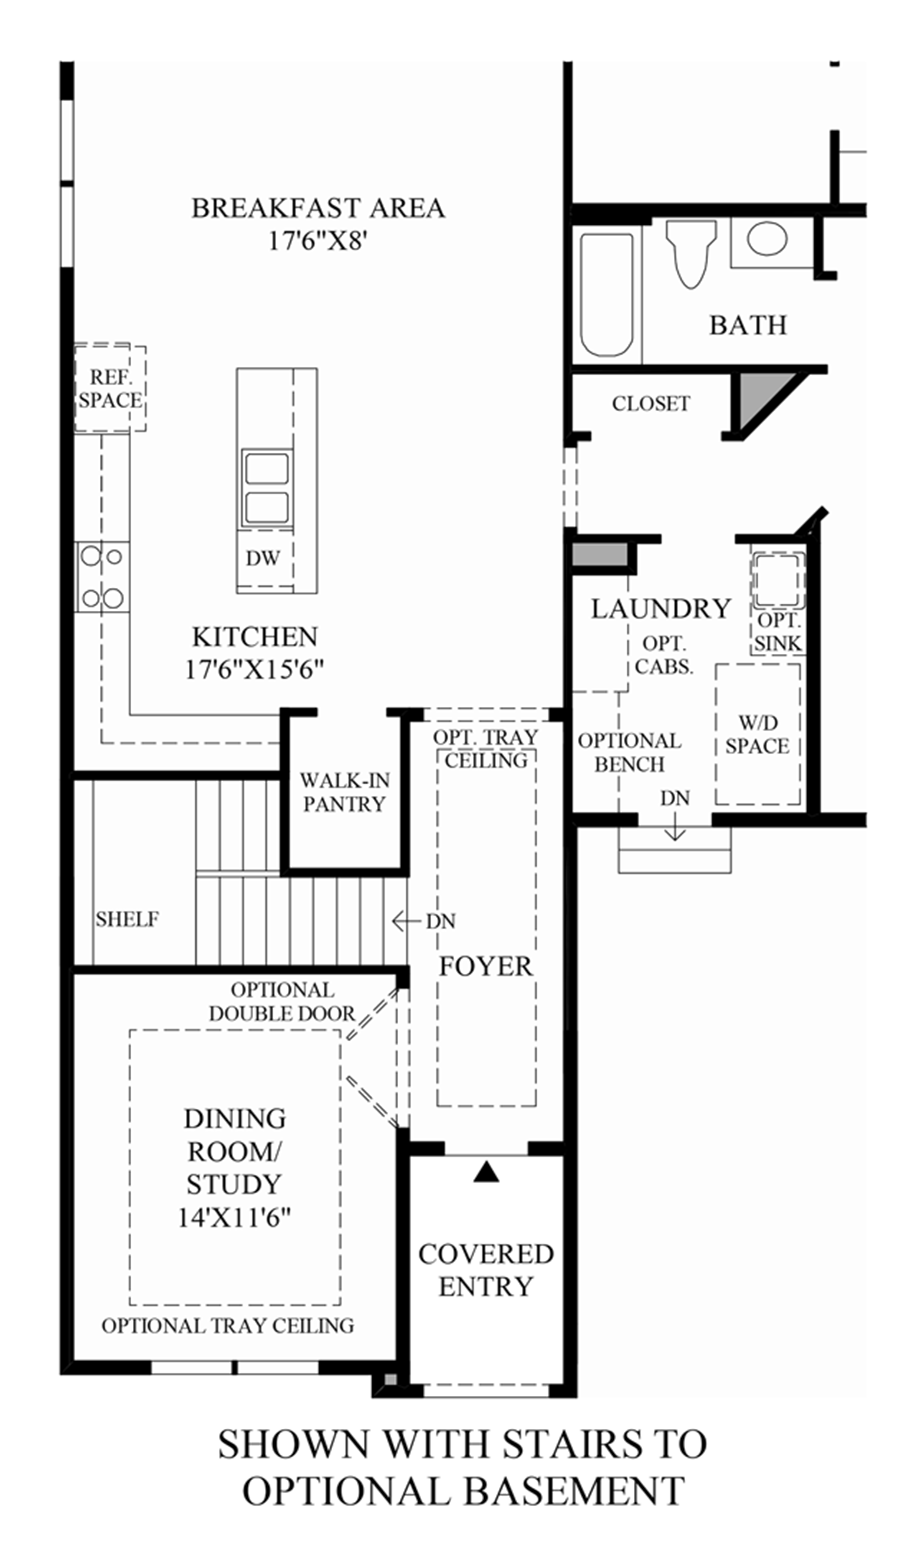 Stairs to Optional Basement Floor Plan